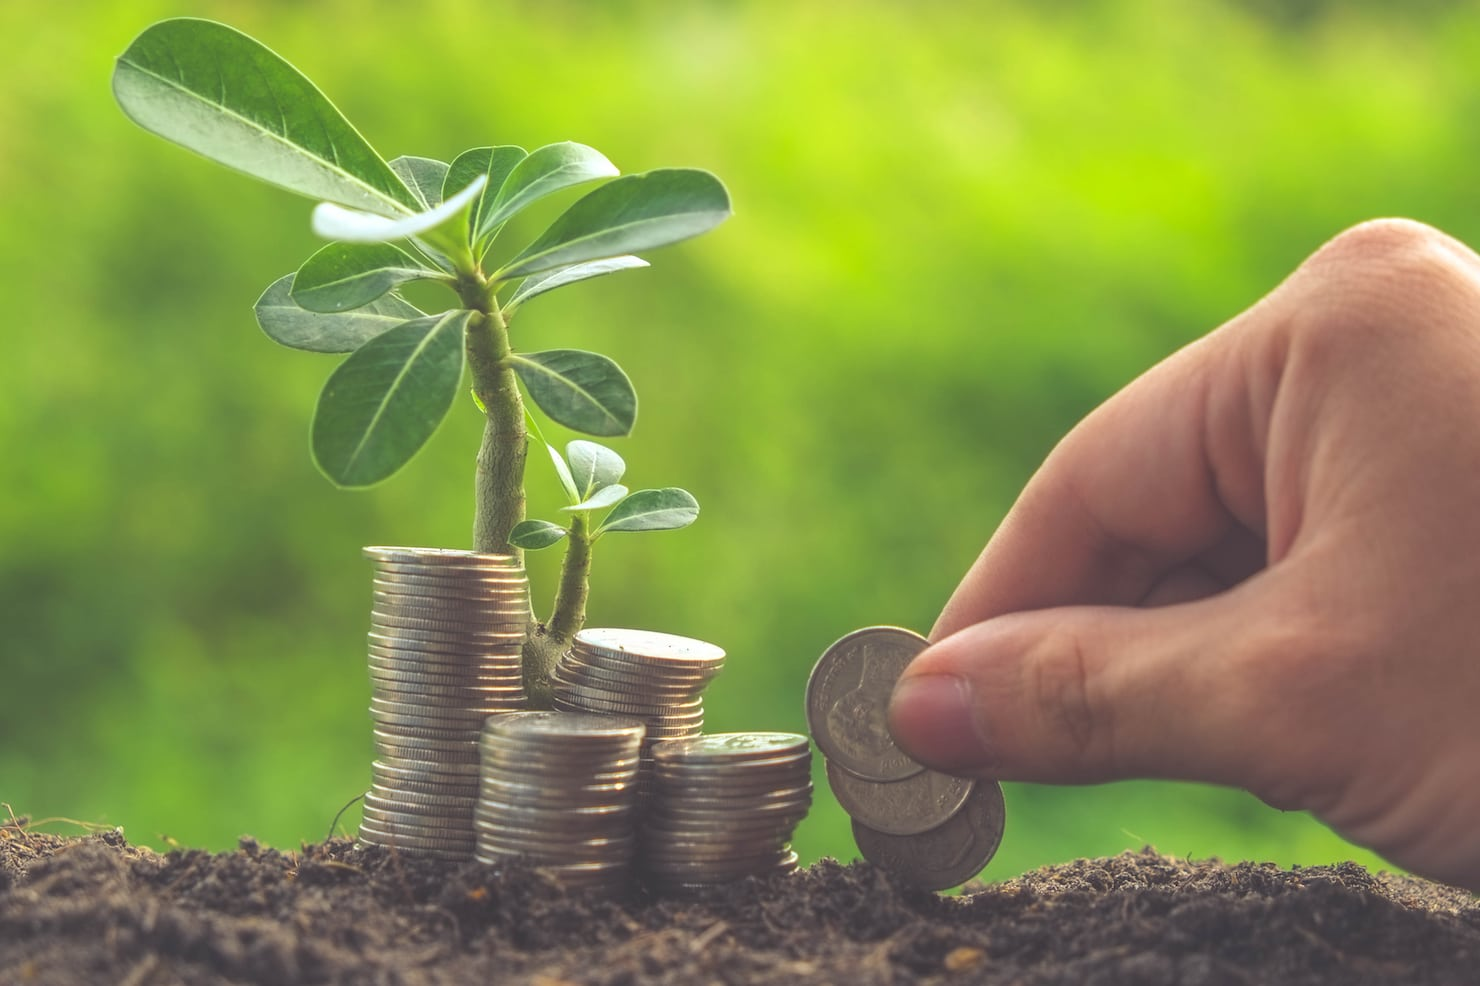 Stock image seed money invest VC